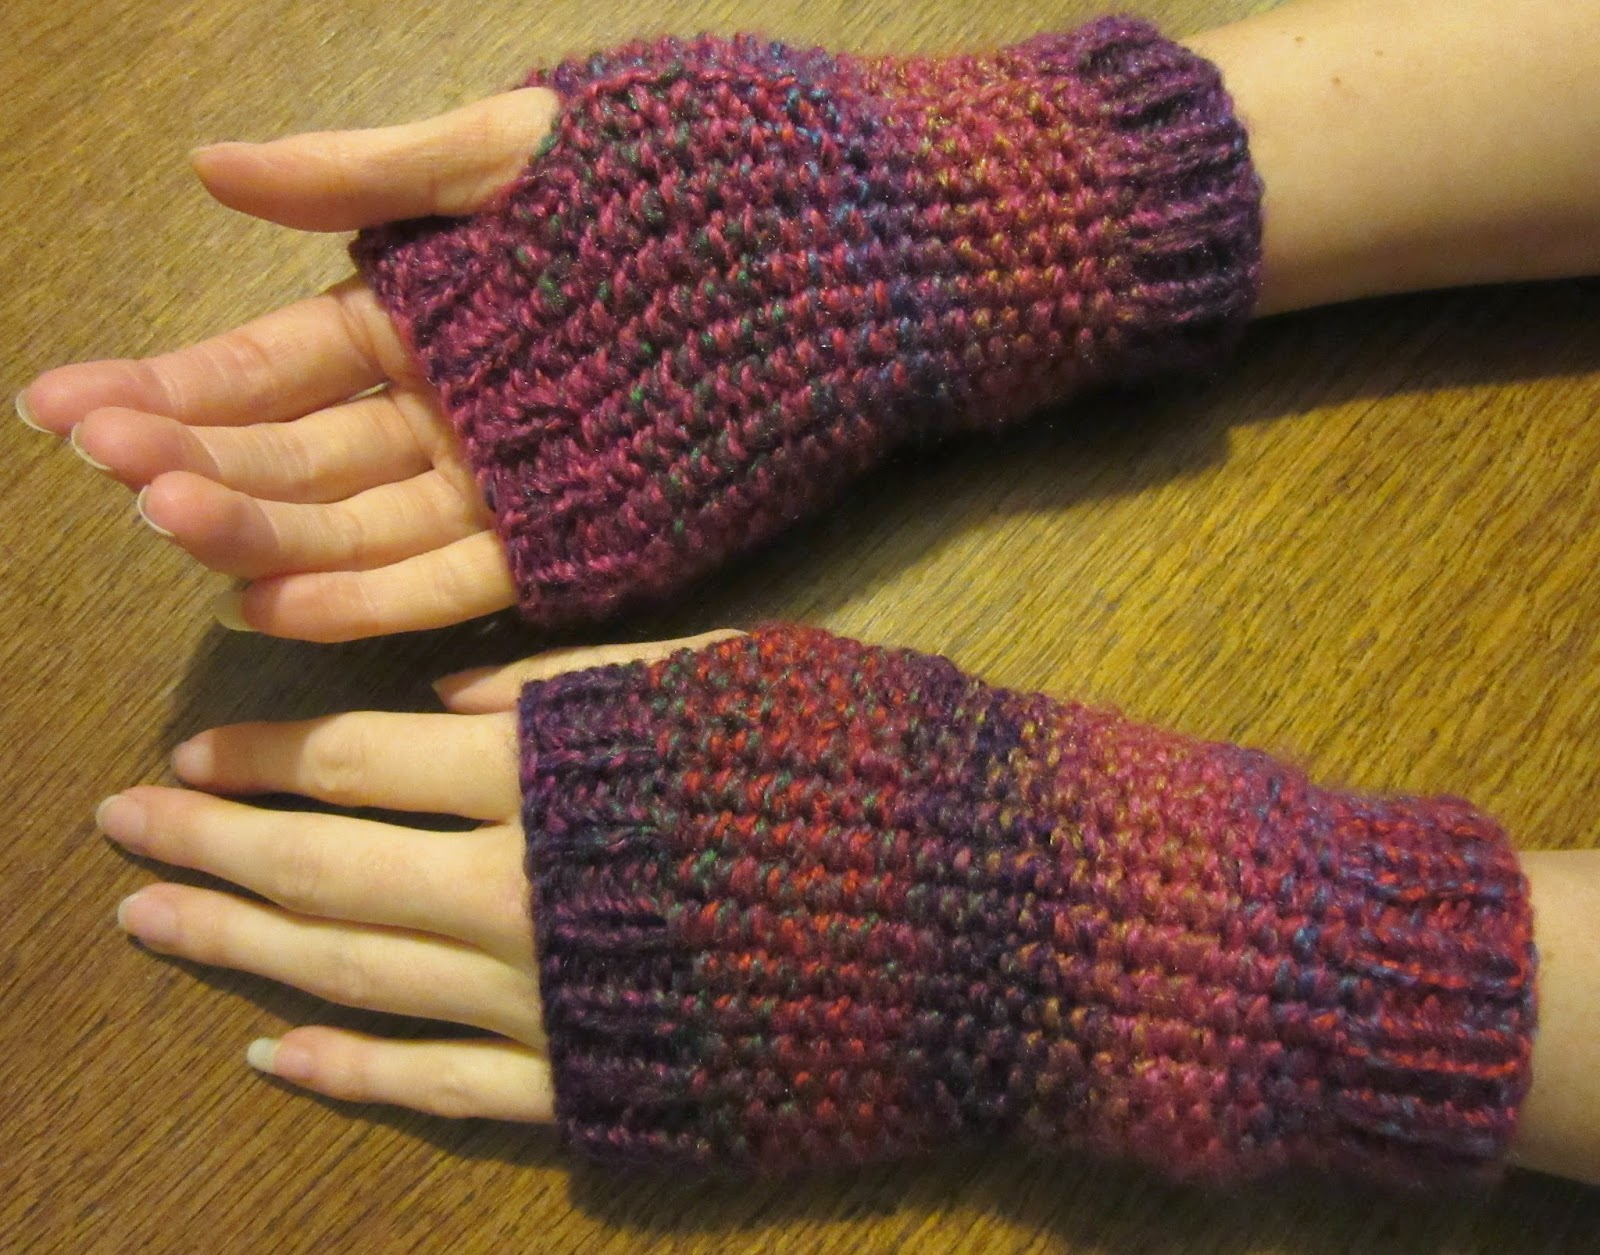 Hands and wrists modelling knitted wrist warmers